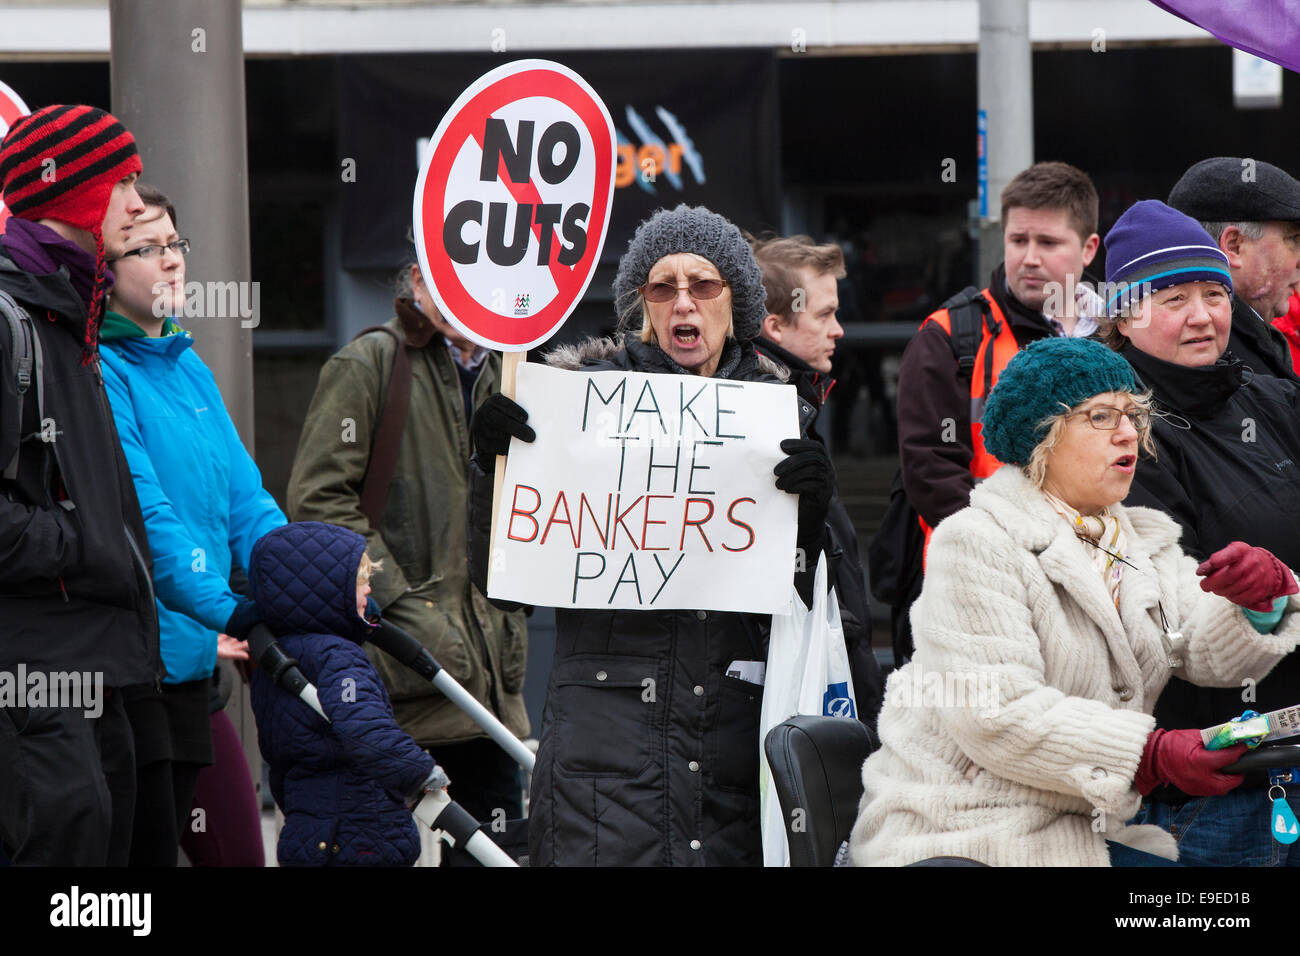 A woman holds a placard reading 'no cuts' and a sign reading 'make the bankers pay. at an anti-austerity - Stock Image